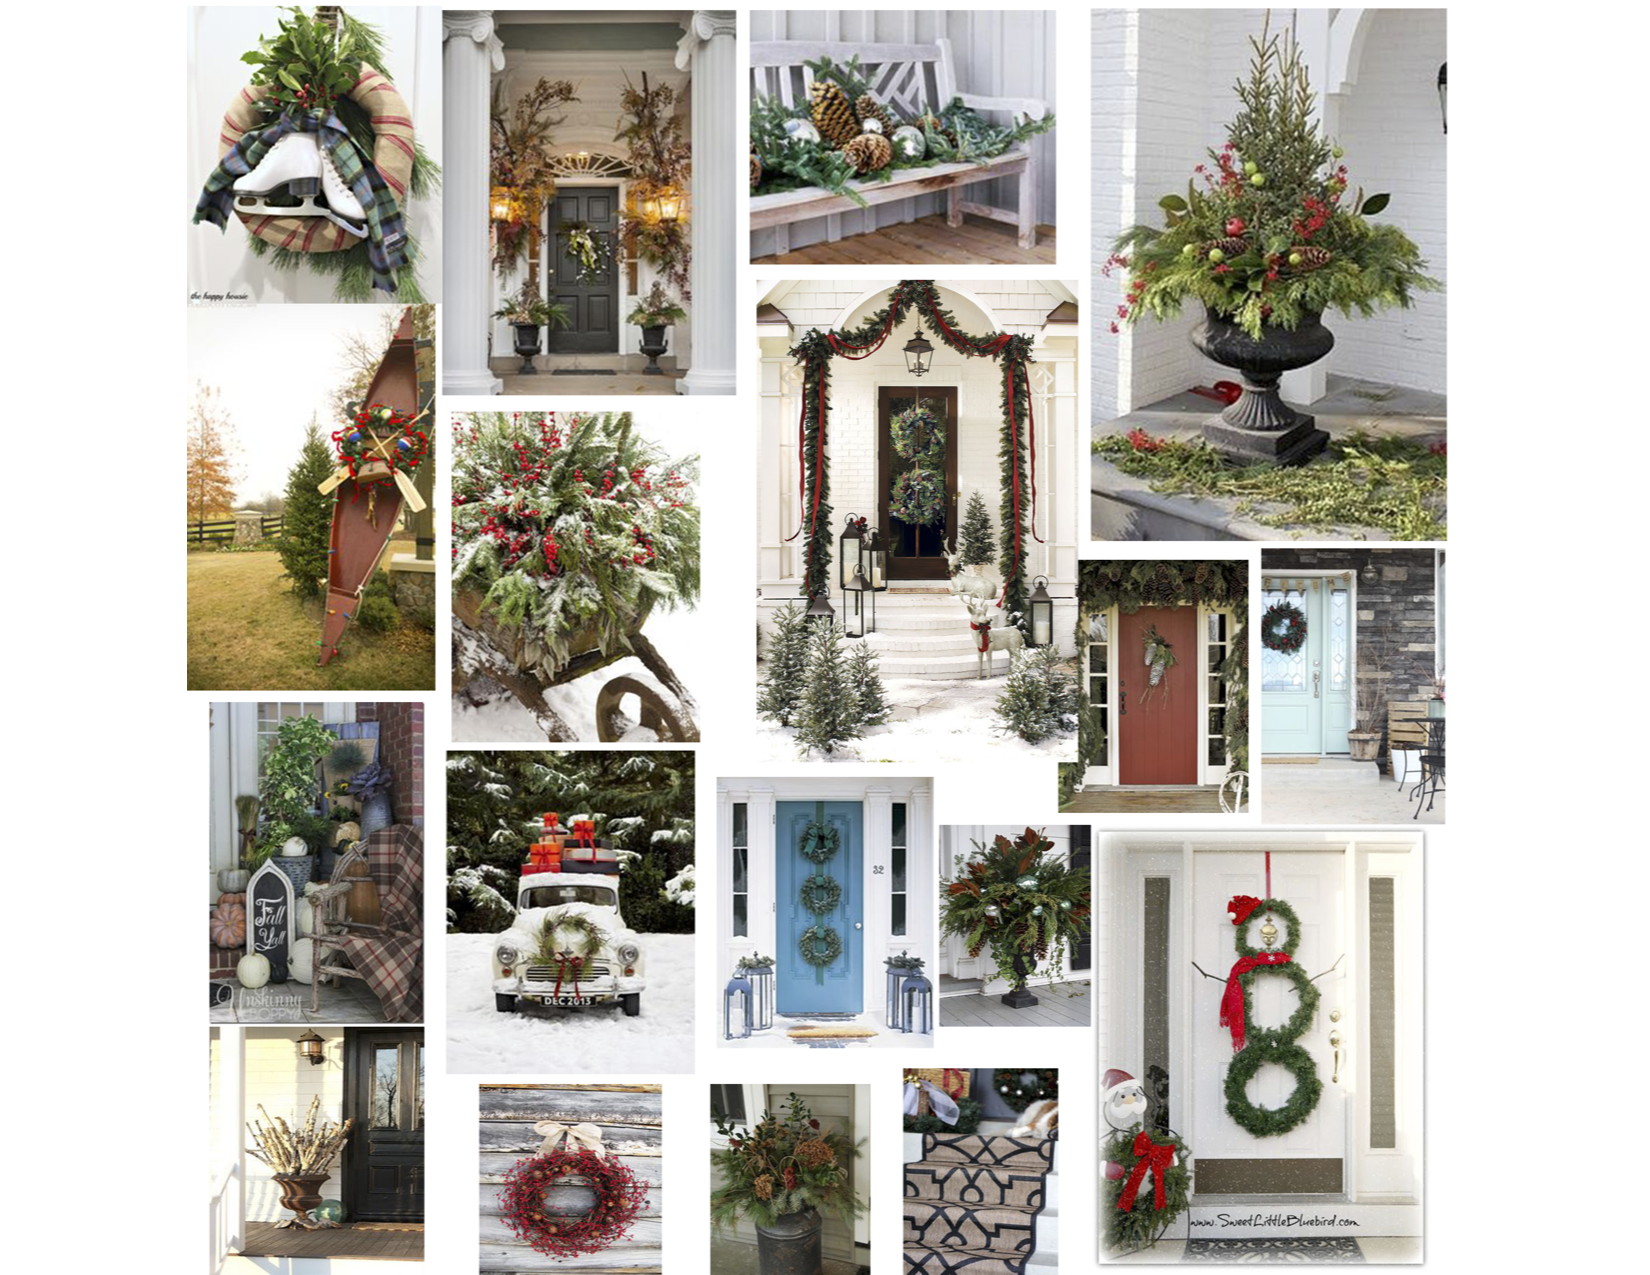 I created this collage of images as inspiration for decorating a front porch.  A lot of these ideas can be used   anywhere inside   your home too!